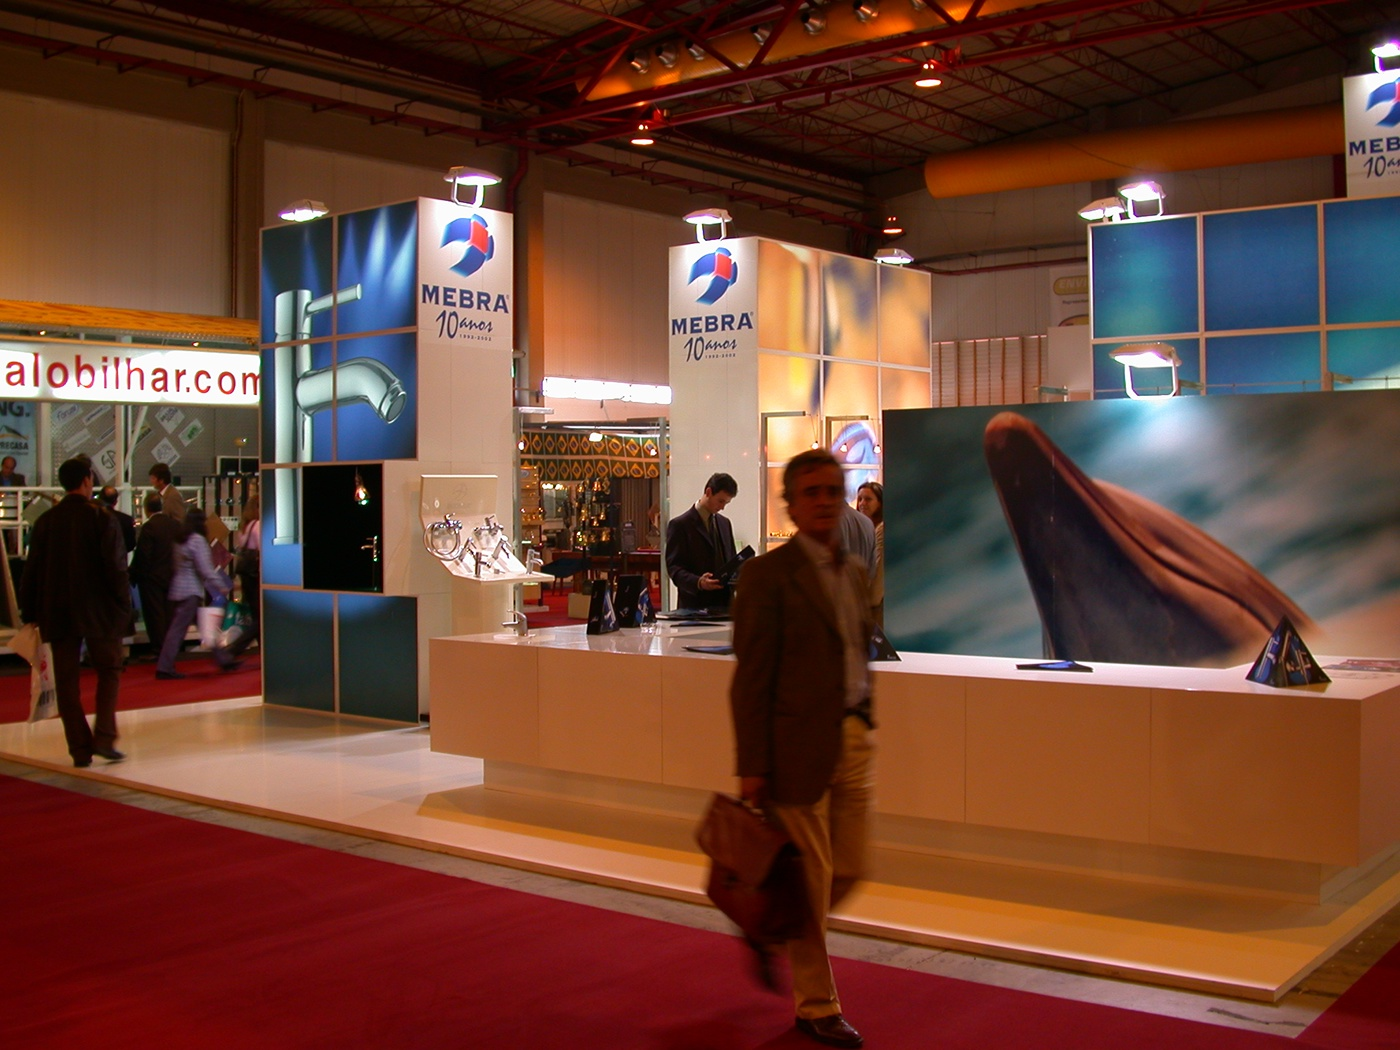 mebra exhibition booth